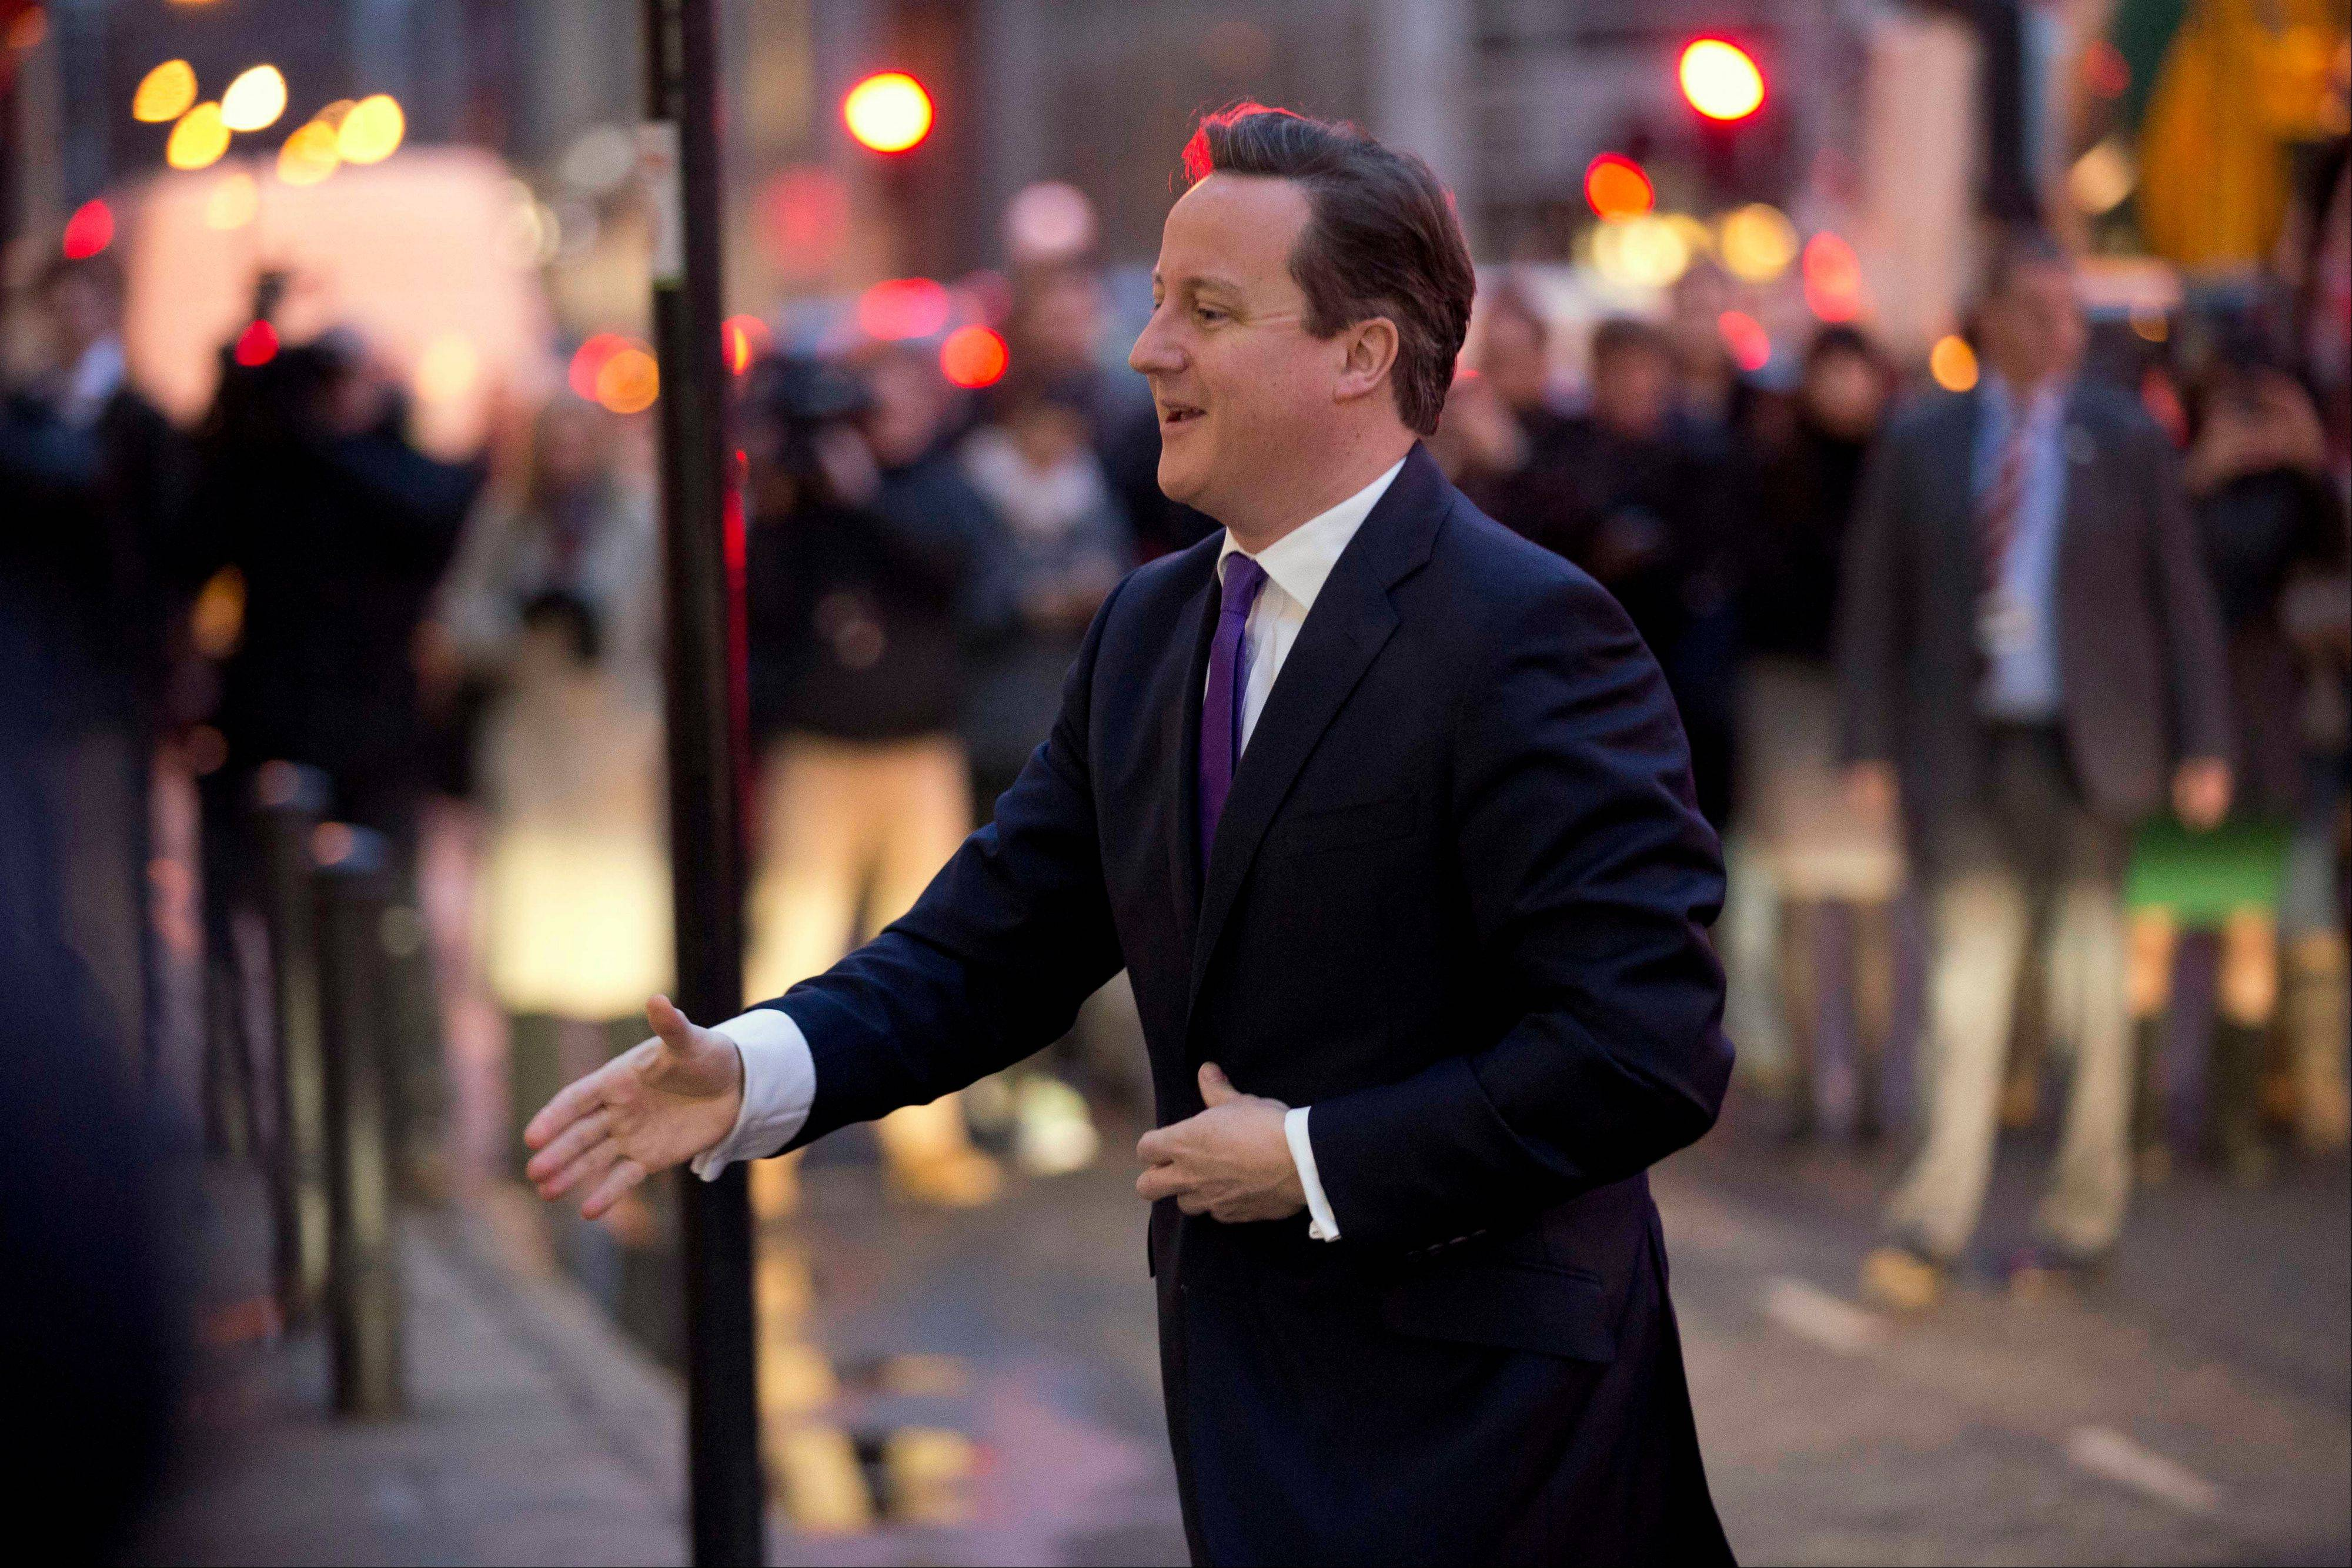 Britain�s Prime Minister David Cameron reaches out to shake hands as he is greeted upon his arrival to deliver a speech on holding a referendum on staying in the European Union in London, Wednesday.